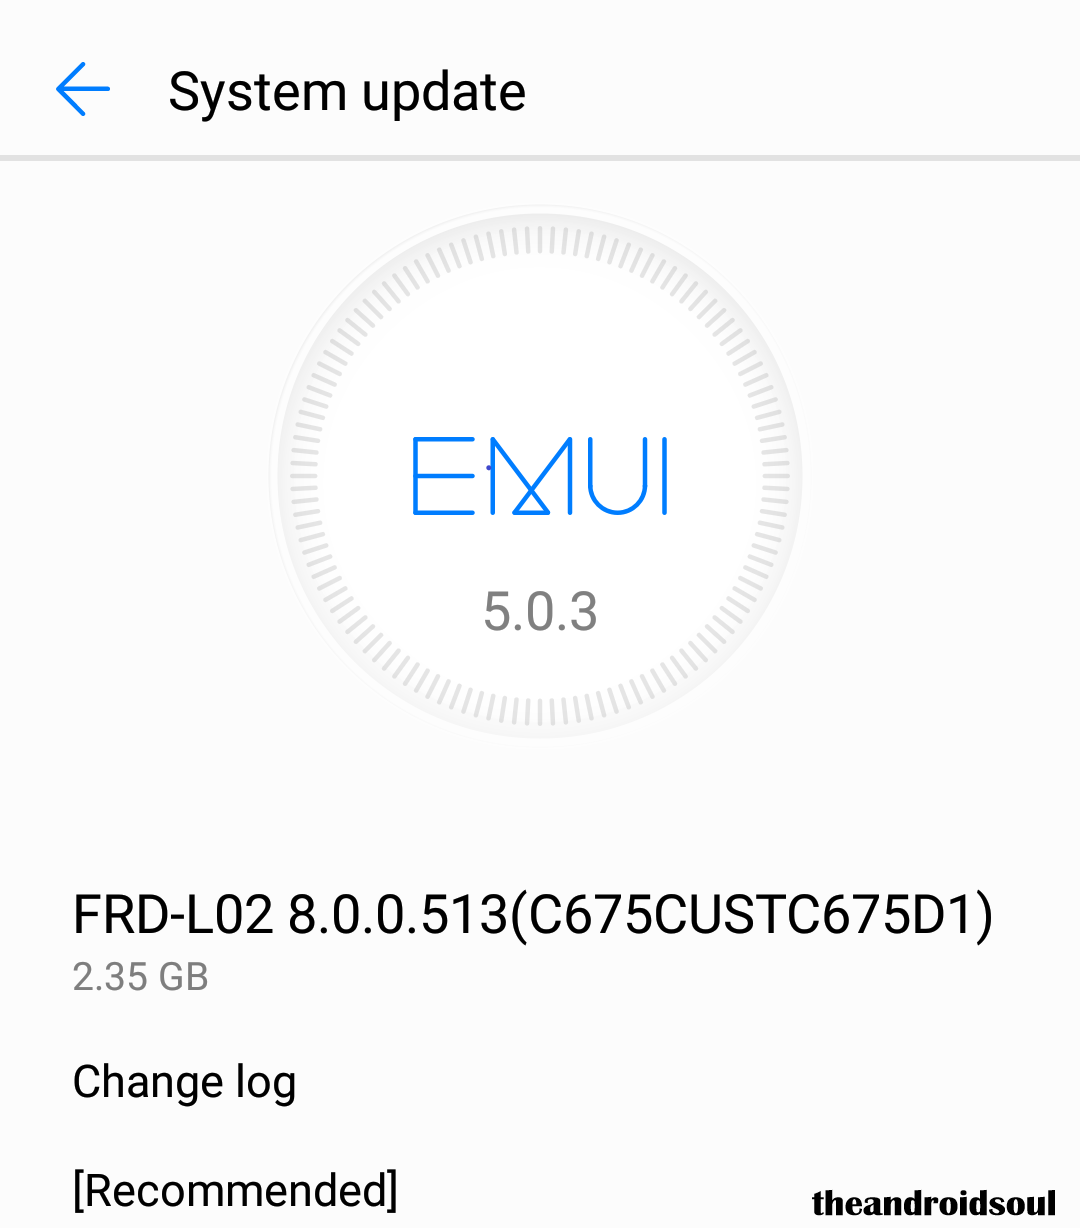 Honor 8 Oreo update in India